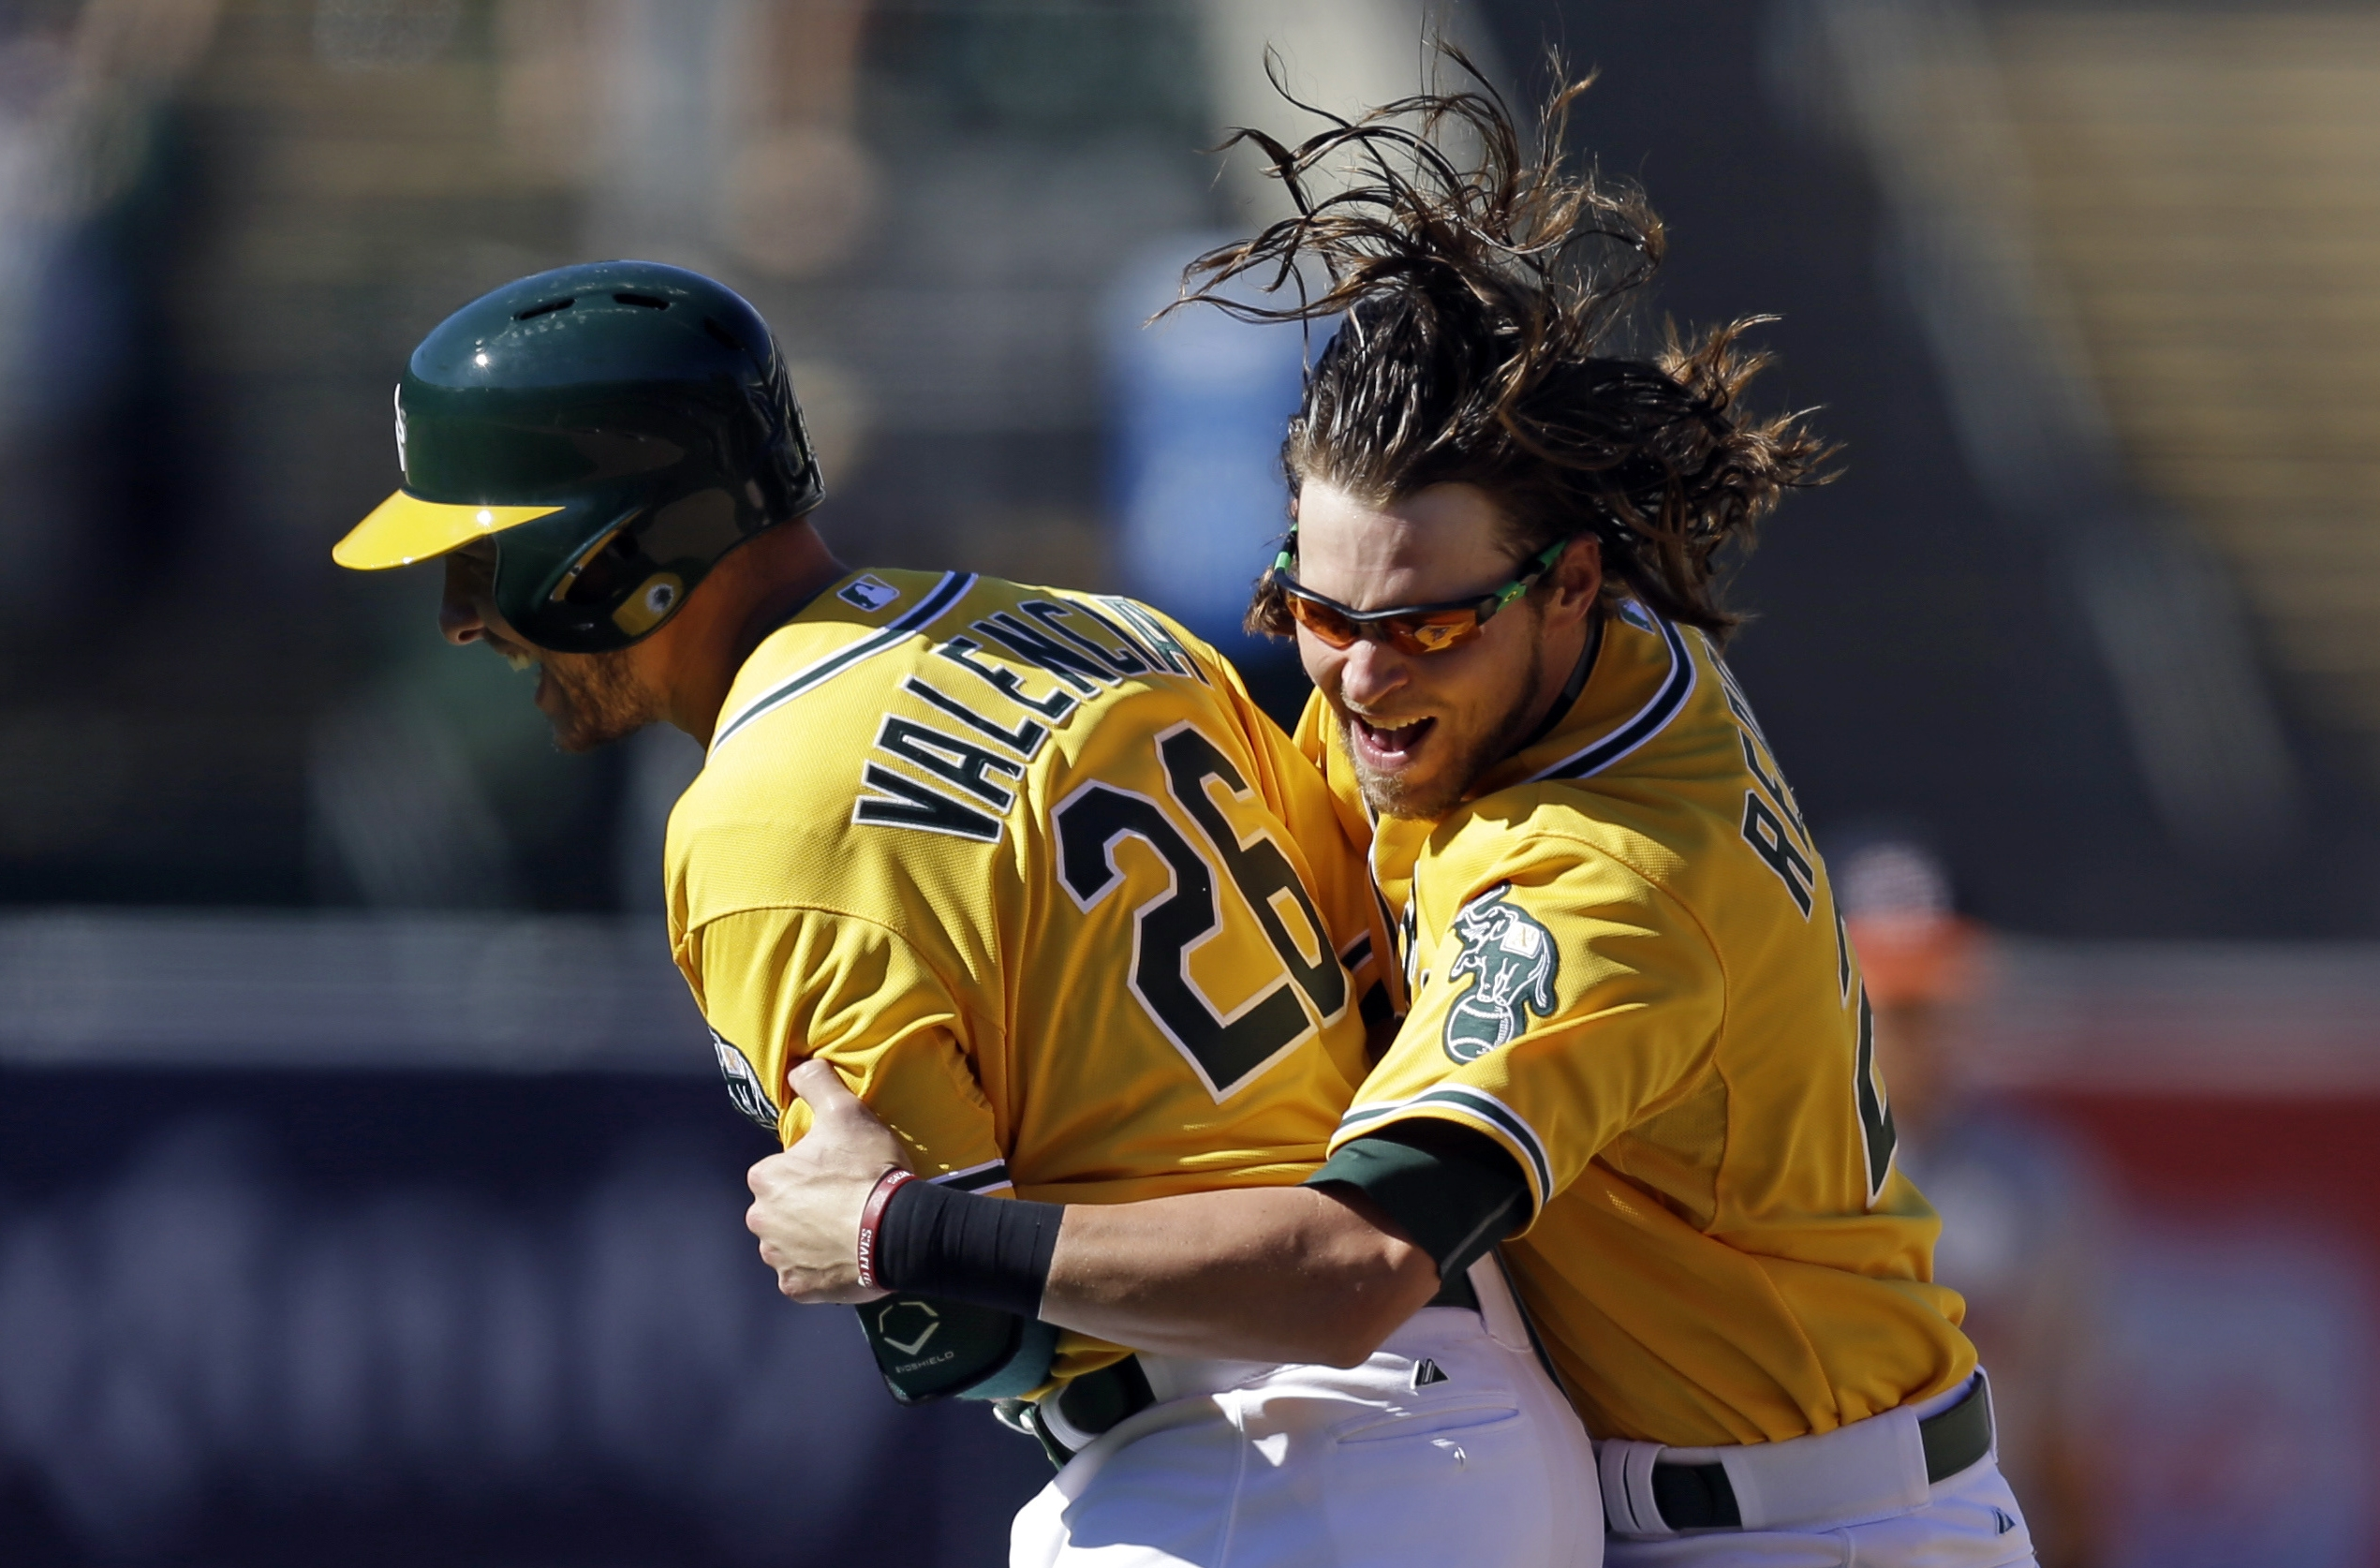 Oakland Athletics' Danny Valencia, left, is embraced by teammate Josh Reddick after making a baseball game-winning hit against the Houston Astros in the ninth inning Sunday, Aug. 9, 2015, in Oakland, Calif. The A's won 5-4. (AP Photo/Ben Margot)